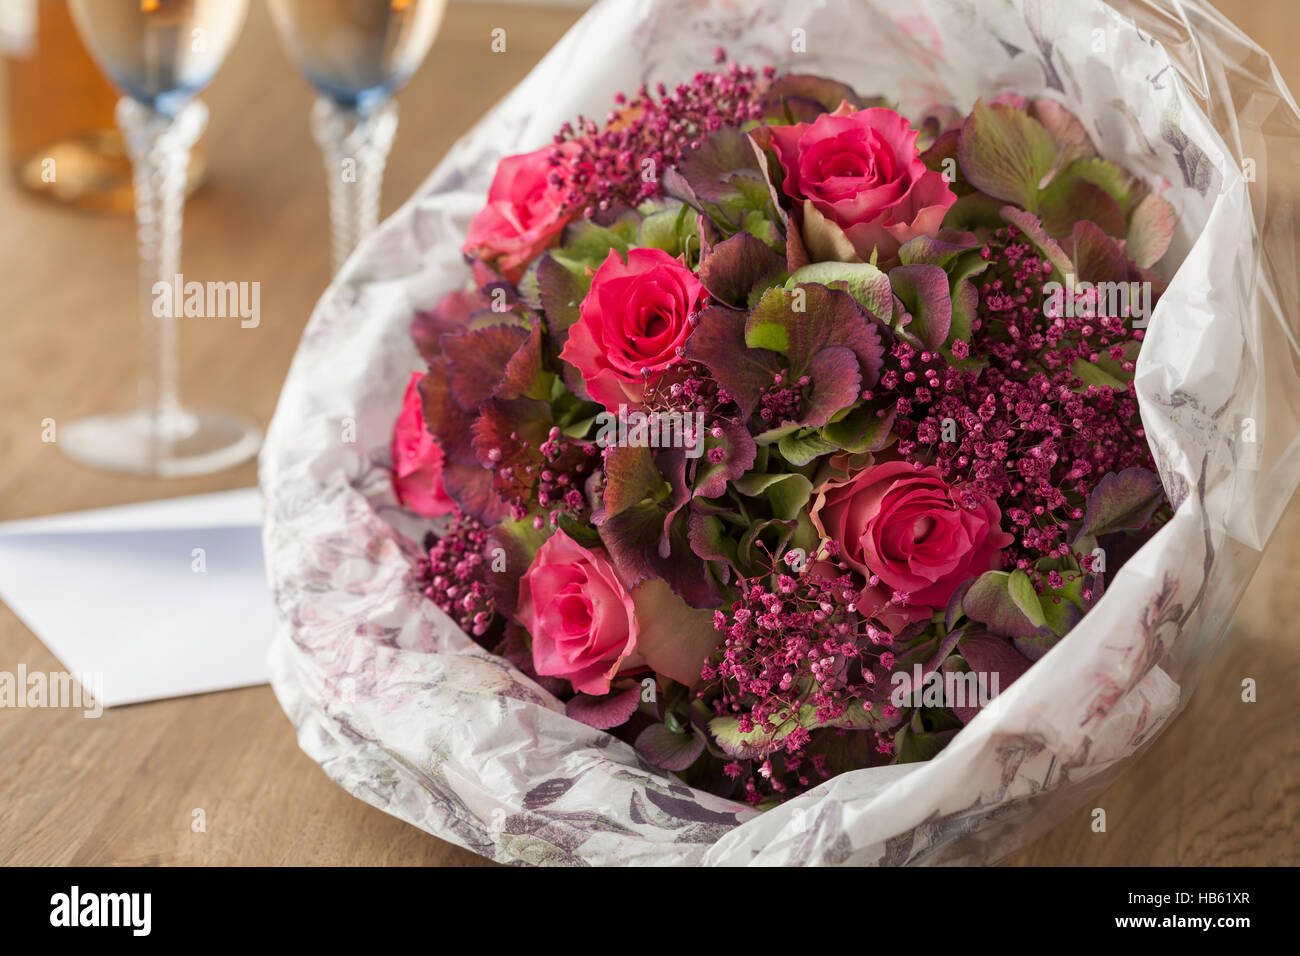 Festive bouquet with pink roses as a gift - Stock Image